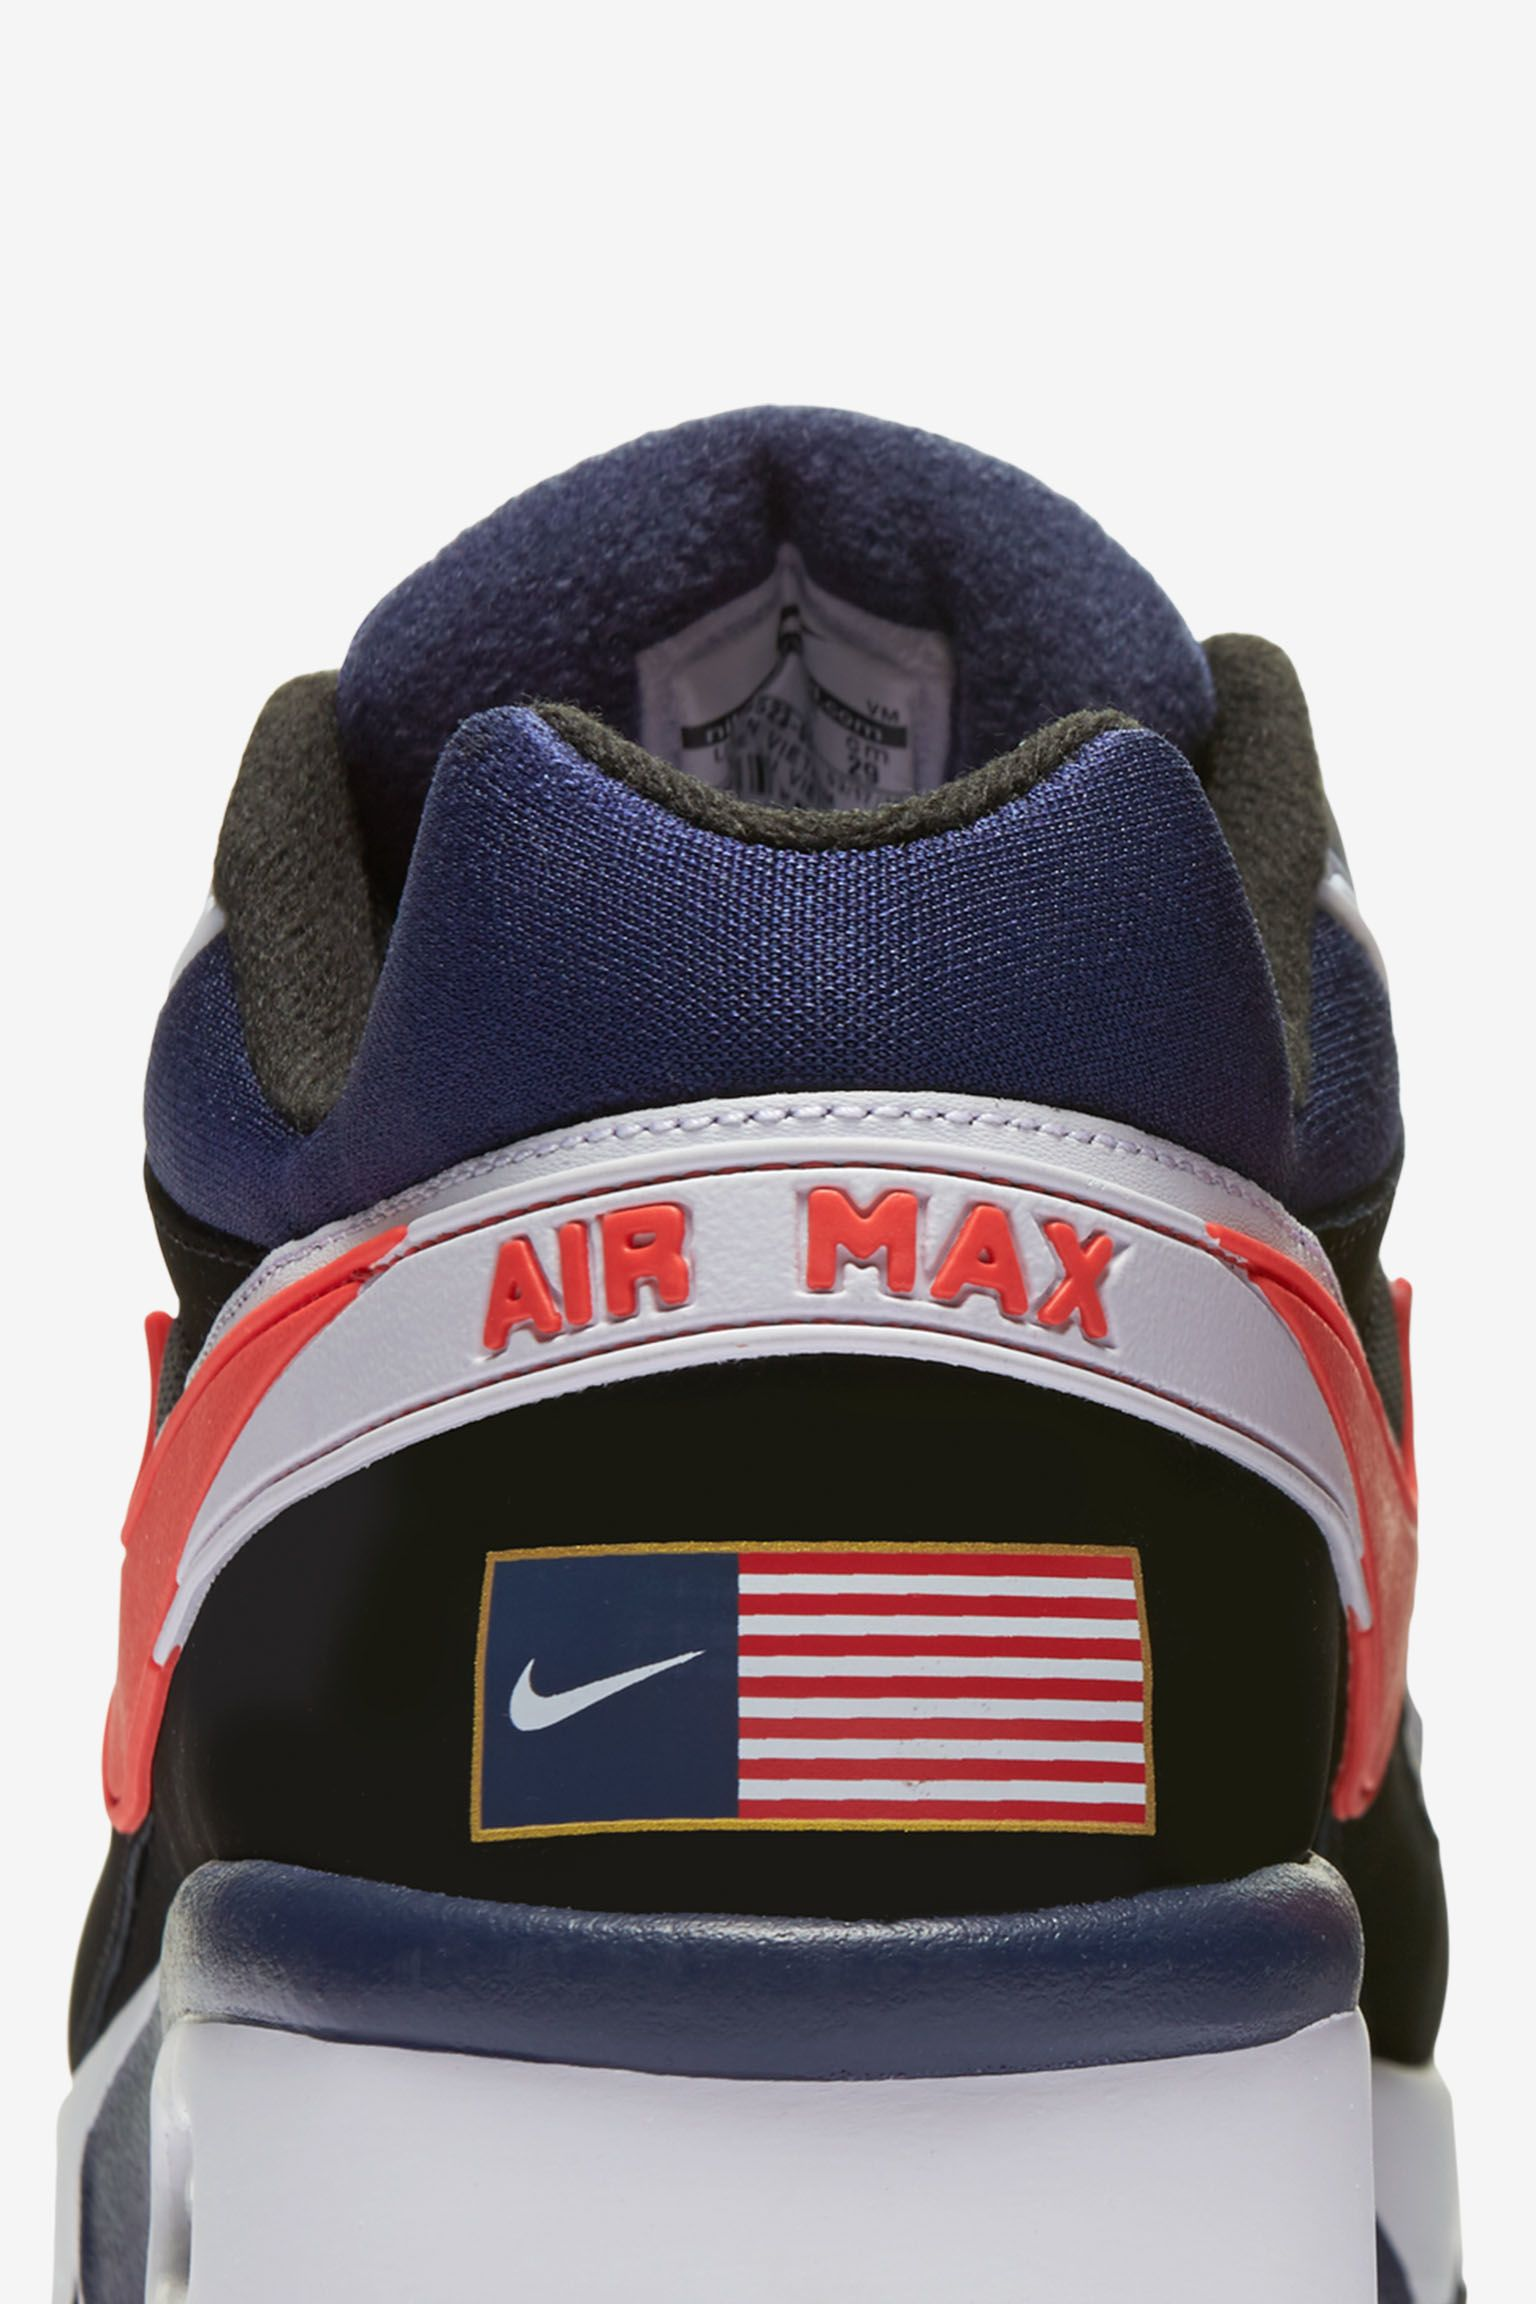 Nike Air Max BW 'USA' Release Date